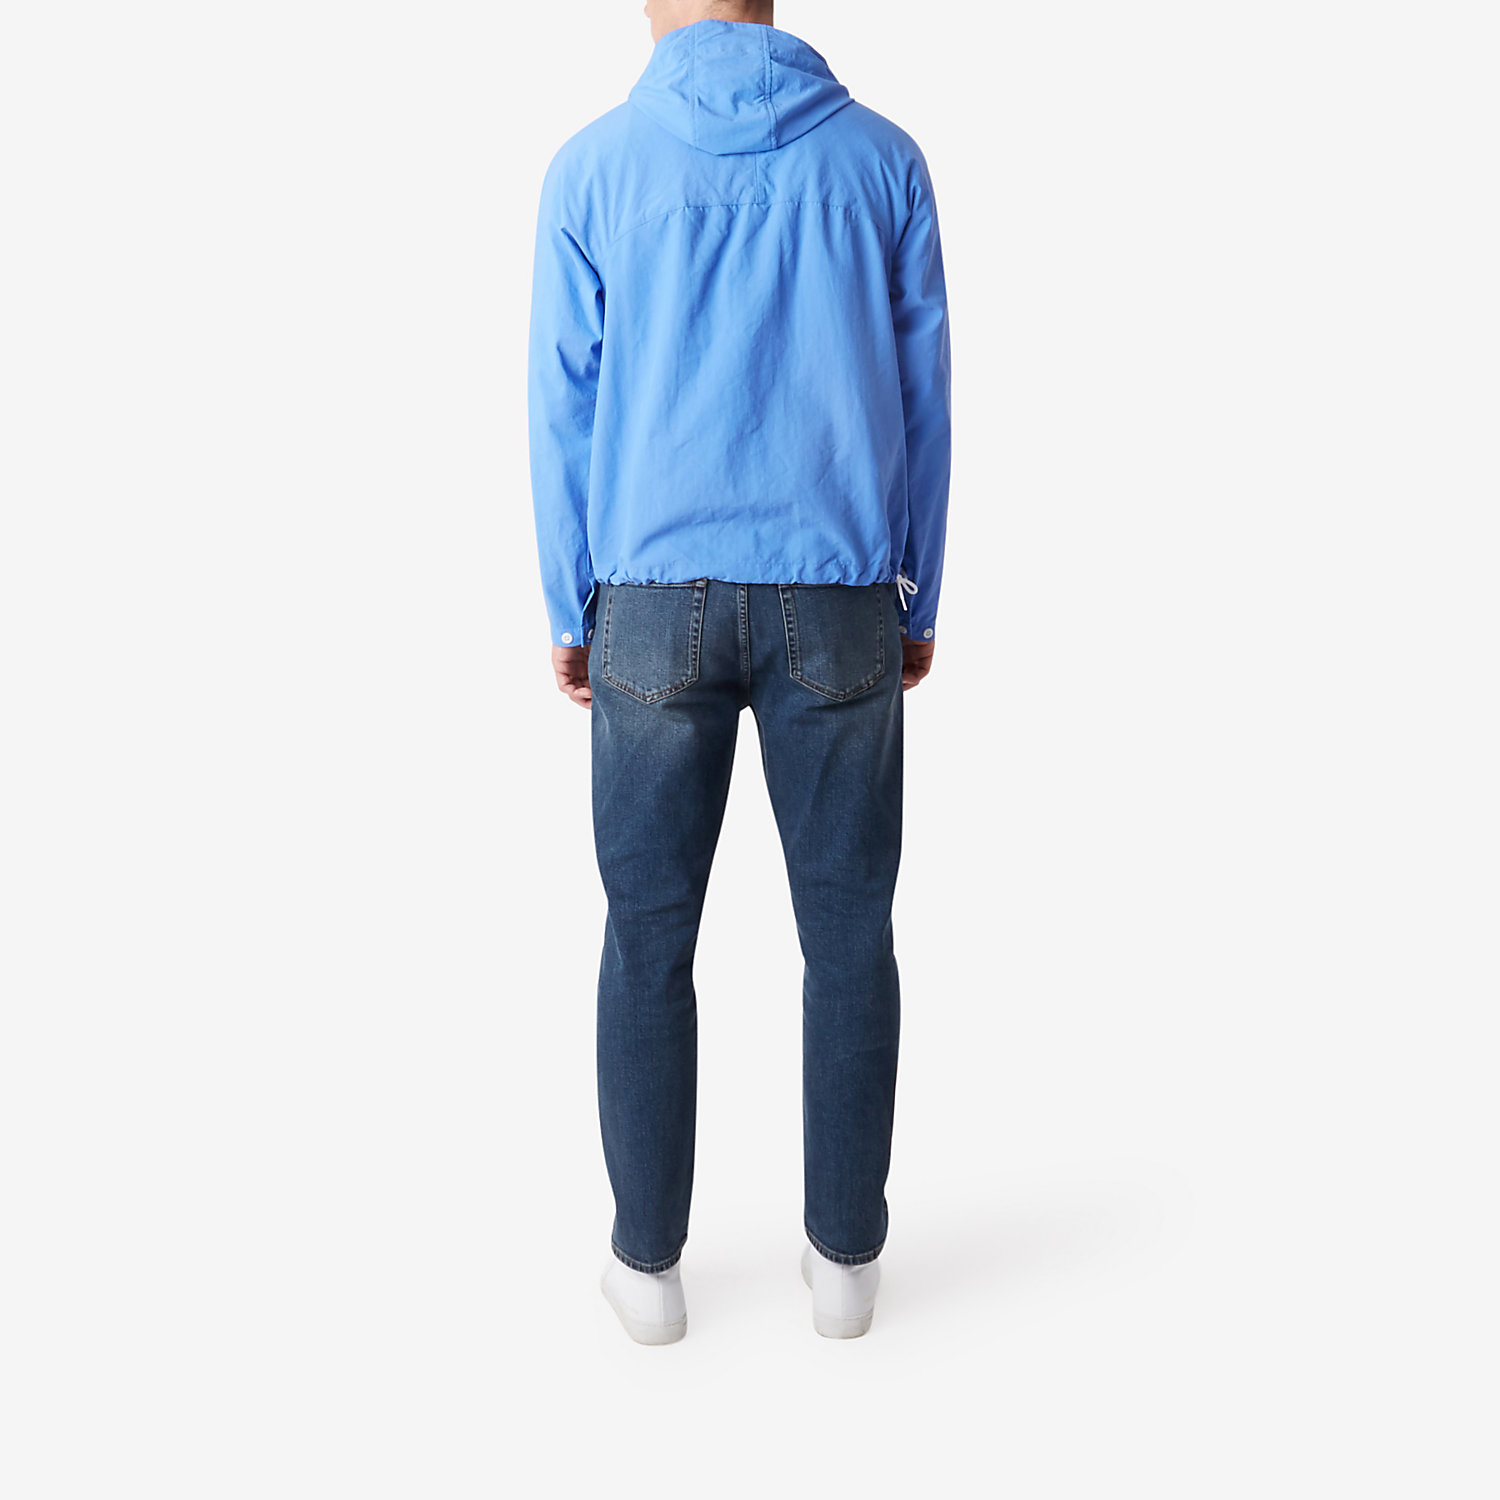 Canada Goose mens outlet discounts - Battenwear Packable Anorak in Blue for Men (BLUE SKY) - Save 40 ...